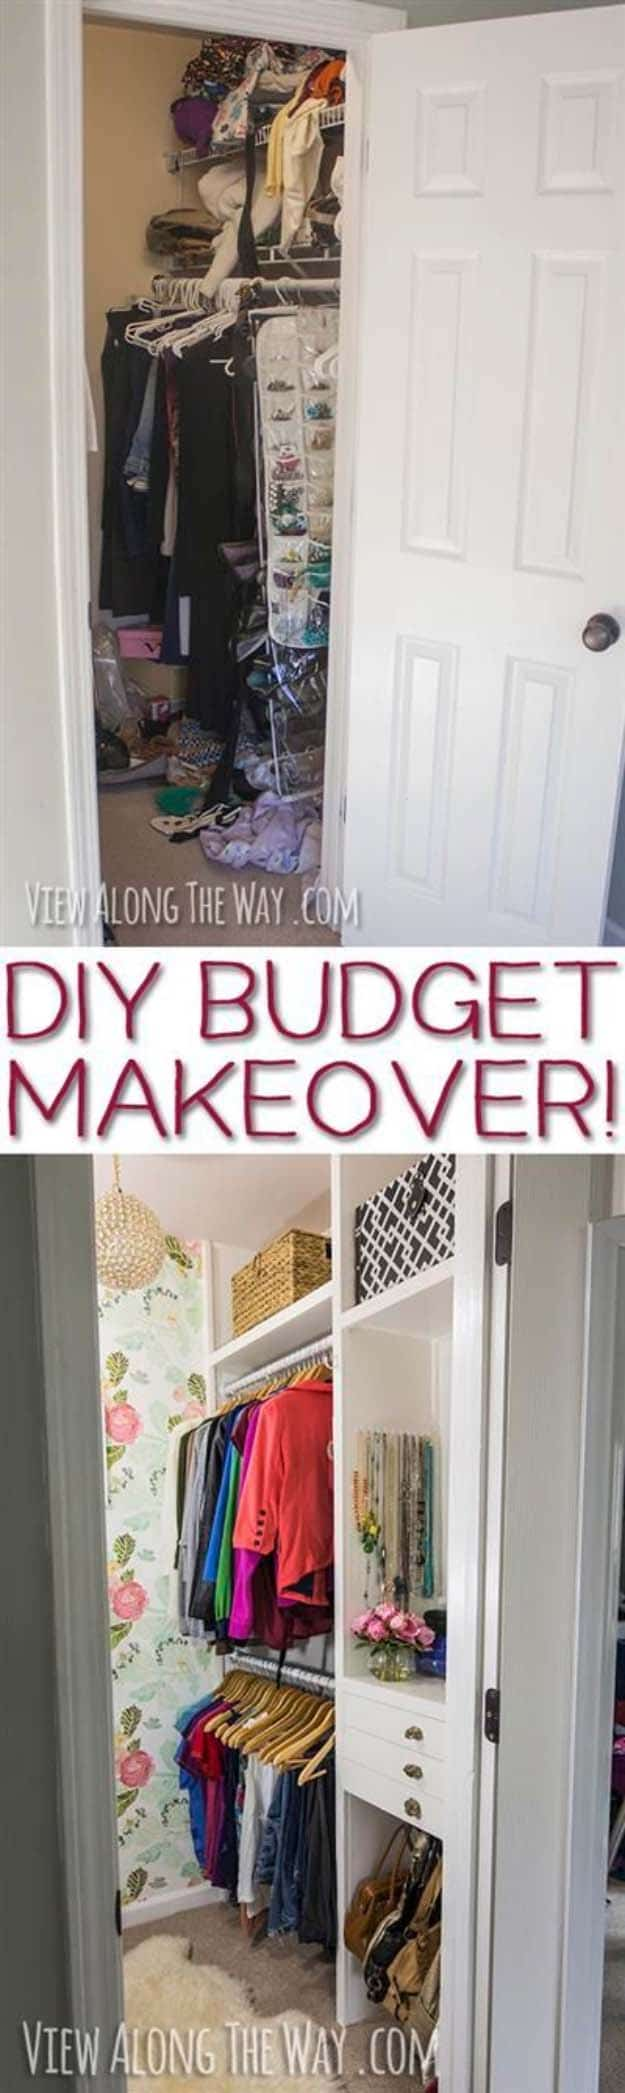 15 Space-Saving Closet Makeover Hacks You Must Try